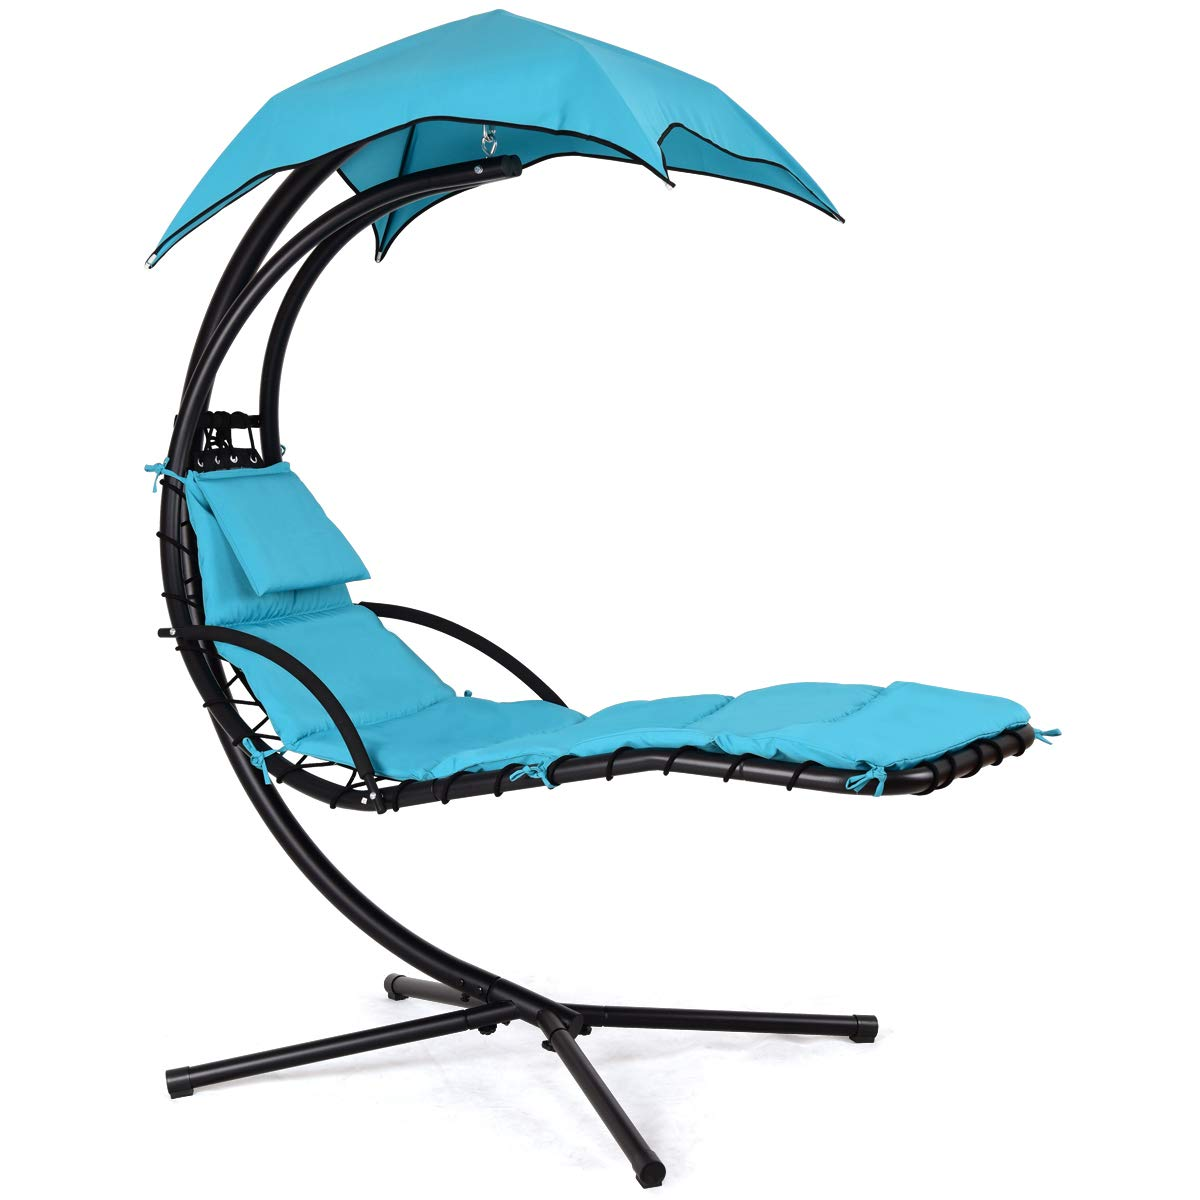 Giantex Hanging Chaise Lounger Swing Chair with Arc Stand, Porch Swing Hammock Chair with Removable Canopy, 330lbs Weight Capacity Blue